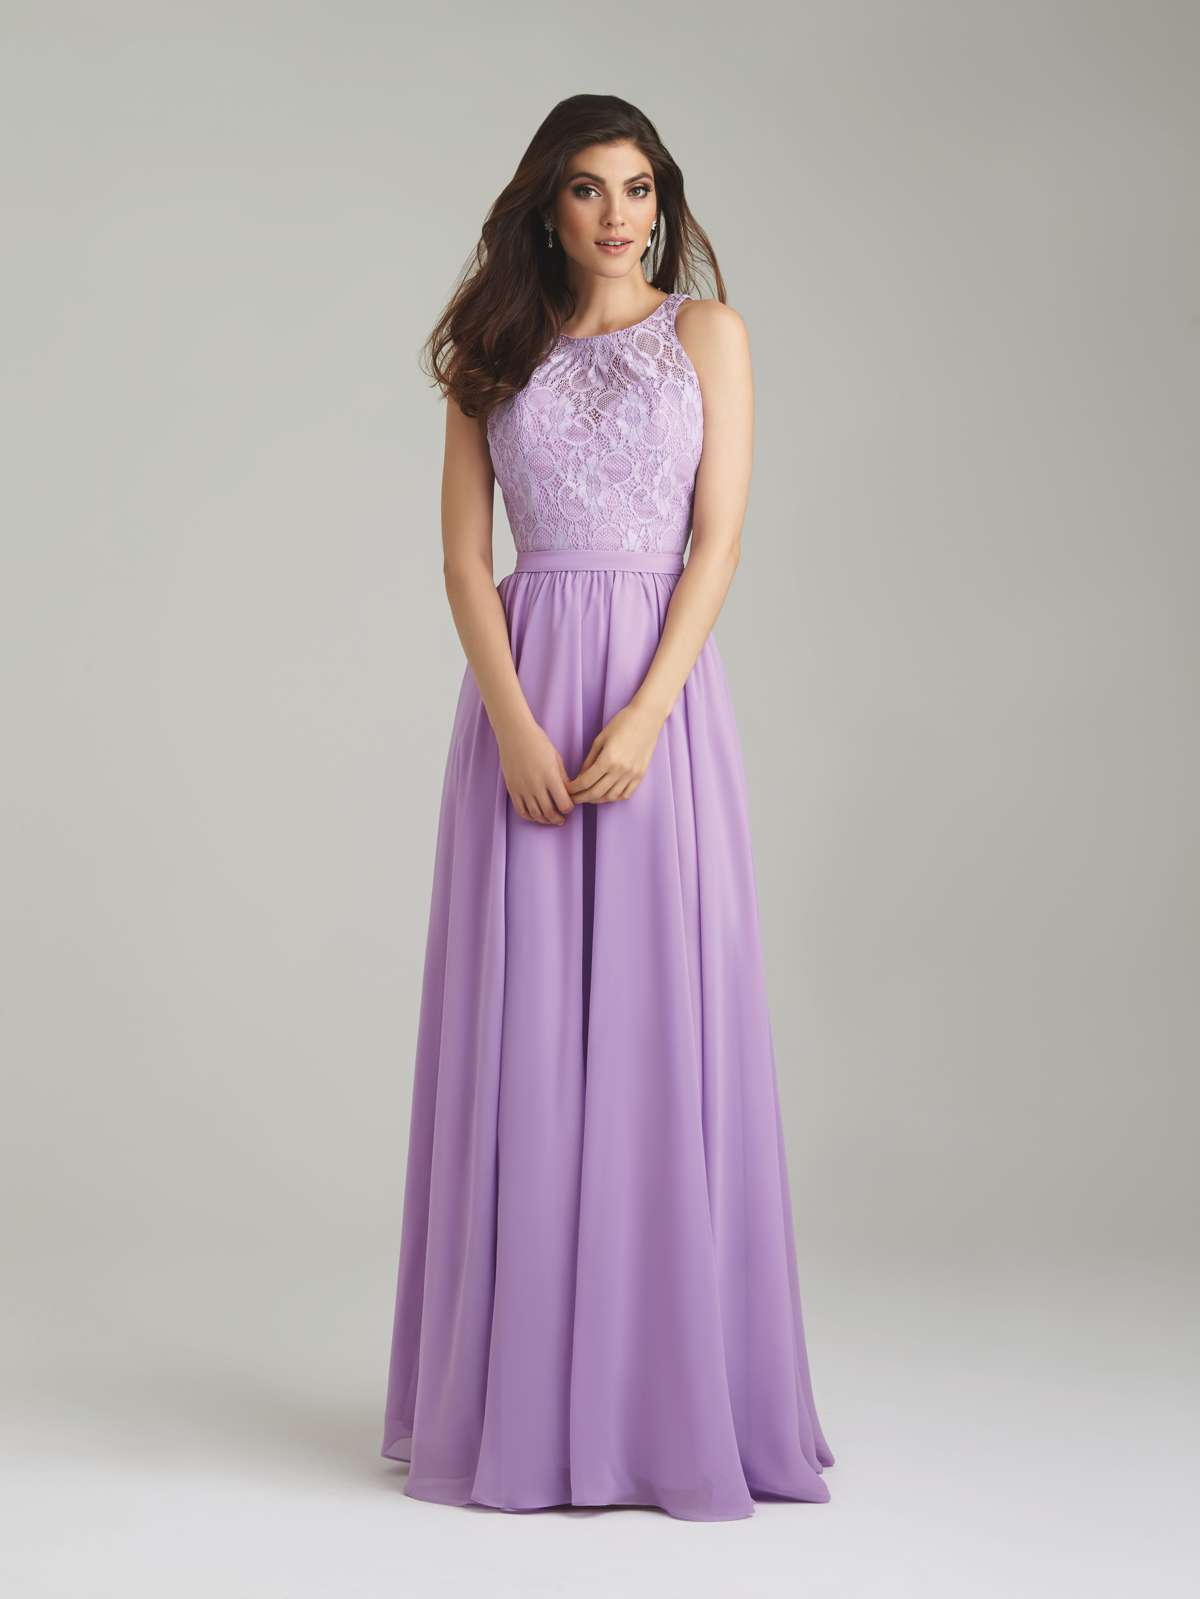 Bridesmaid gowns your girls will love! - Love Our Wedding